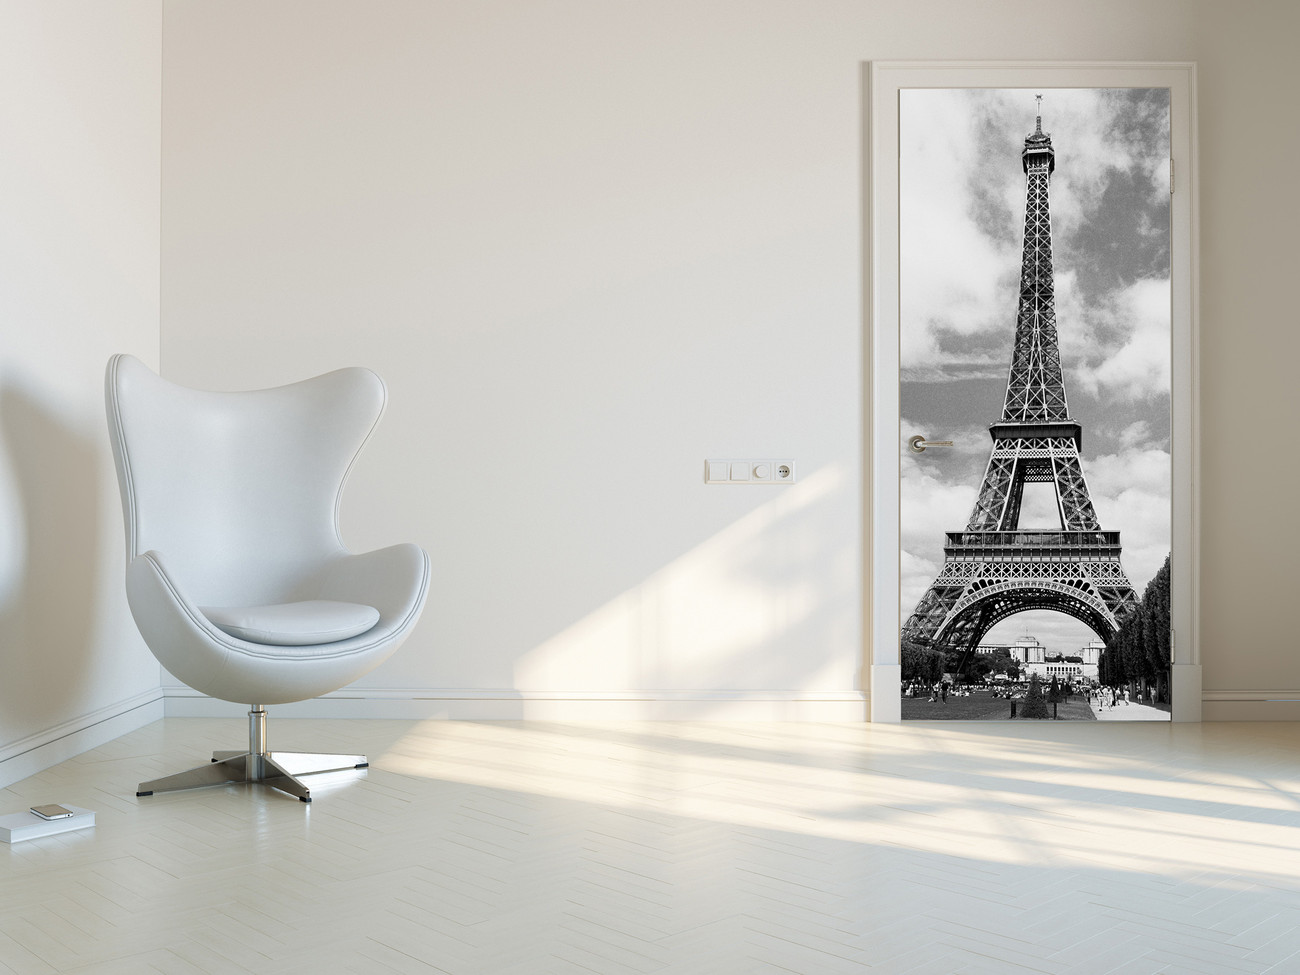 Eiffel tower wall mural buy at europosters for Eiffel tower wall mural ikea